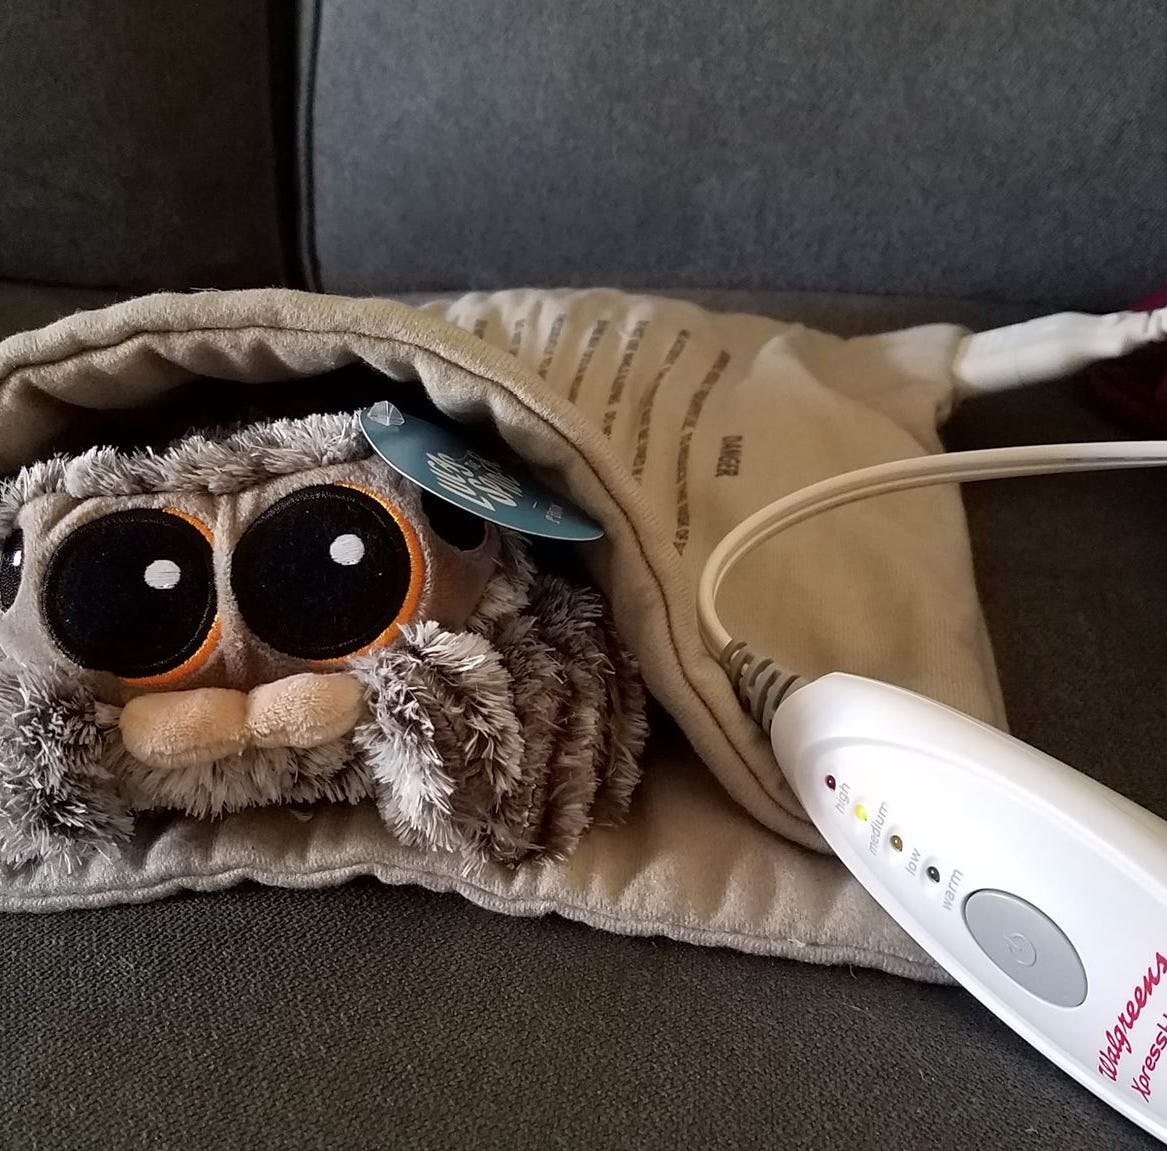 Lucas the Spider Plushie voice box not working? Some people recommend using a heating pad and warming him up.